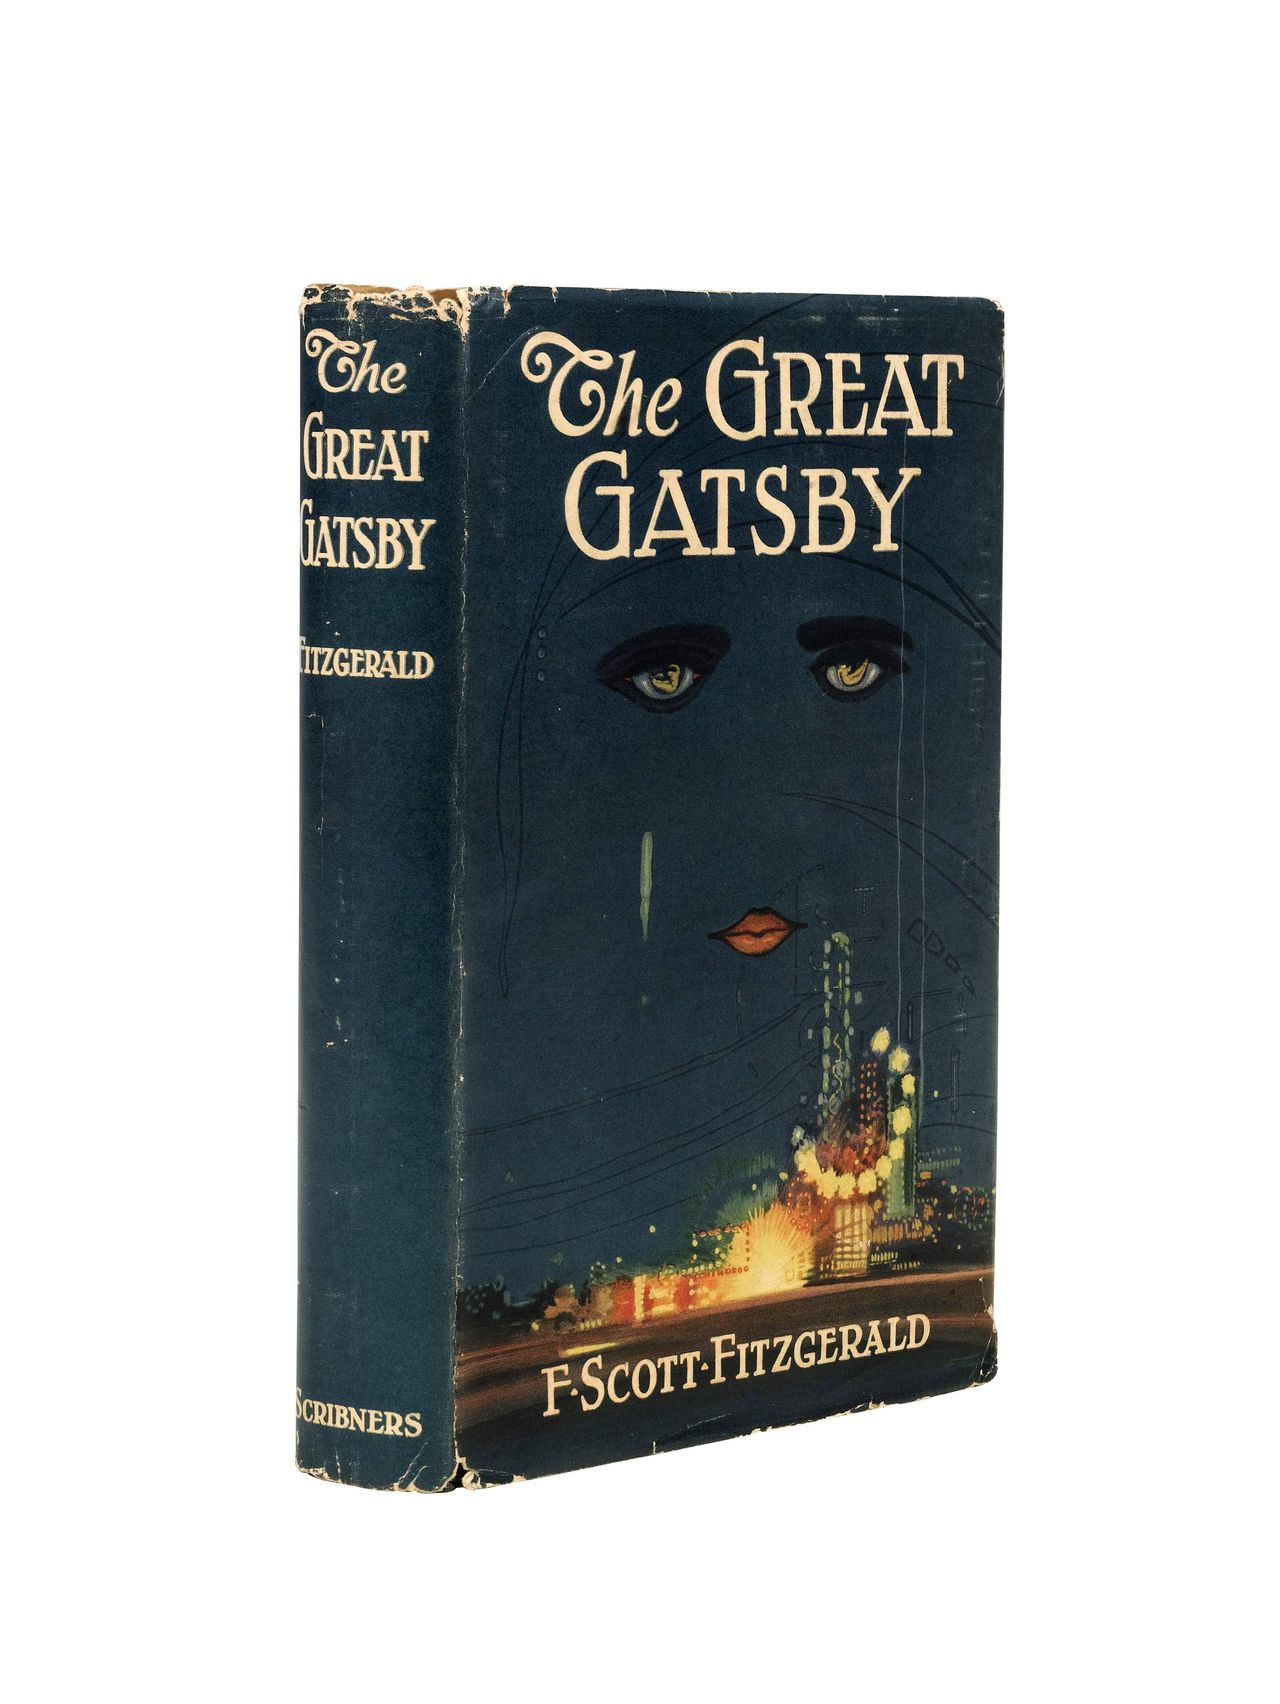 """A copy of """"The Great Gatsby"""" by F. Scott Fitzgerald from 1925, part of the Annette Campbell-White Collection, is estimated to fetch up to 70,000 pounds during a Sotheby's London auction on June 7, 2007. California money manager Annette Campbell-White, who has launched about $500 million of medical funds, is selling her book collection at Sotheby's as part of """"The Modern Movement"""" sale, with some volumes priced at 10 times their cost. Source: Sotheby's via Bloomberg News."""